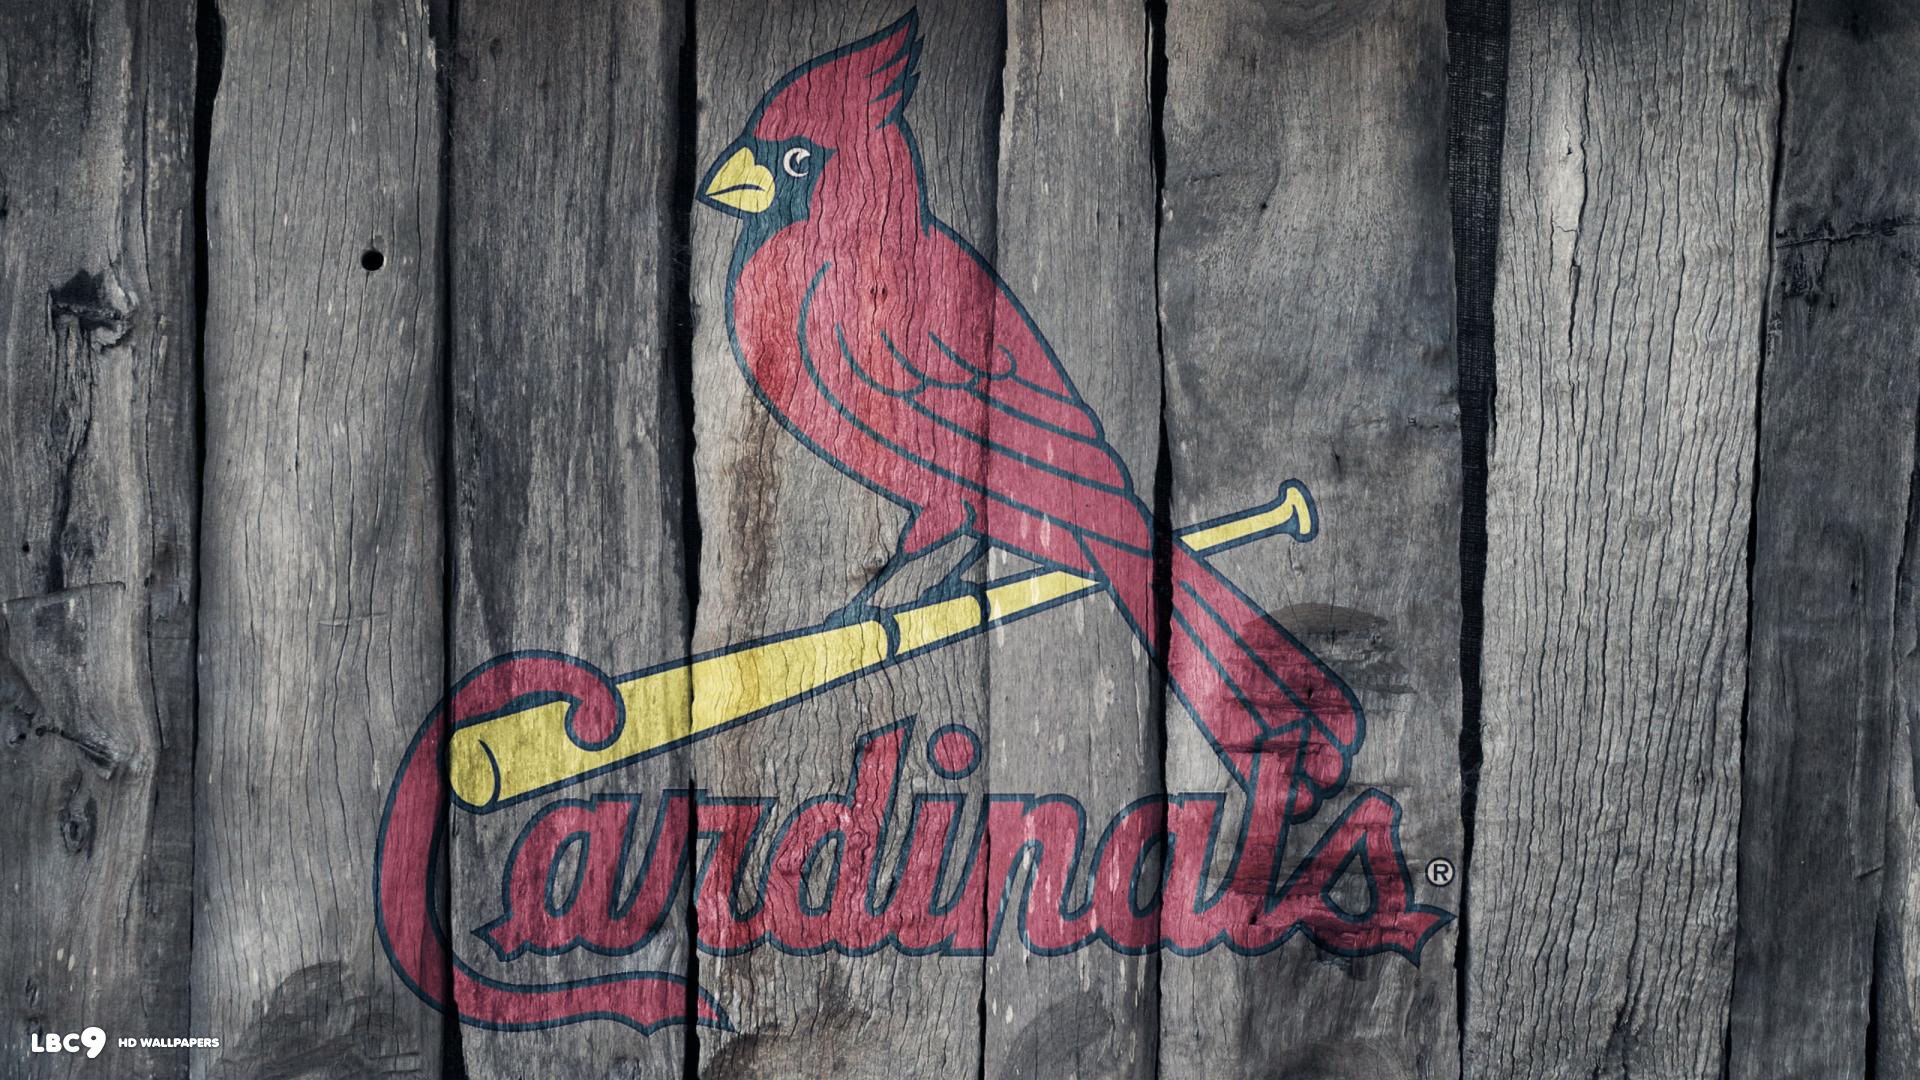 St Louis Cardinals Wallpaper 1920x1080 73471